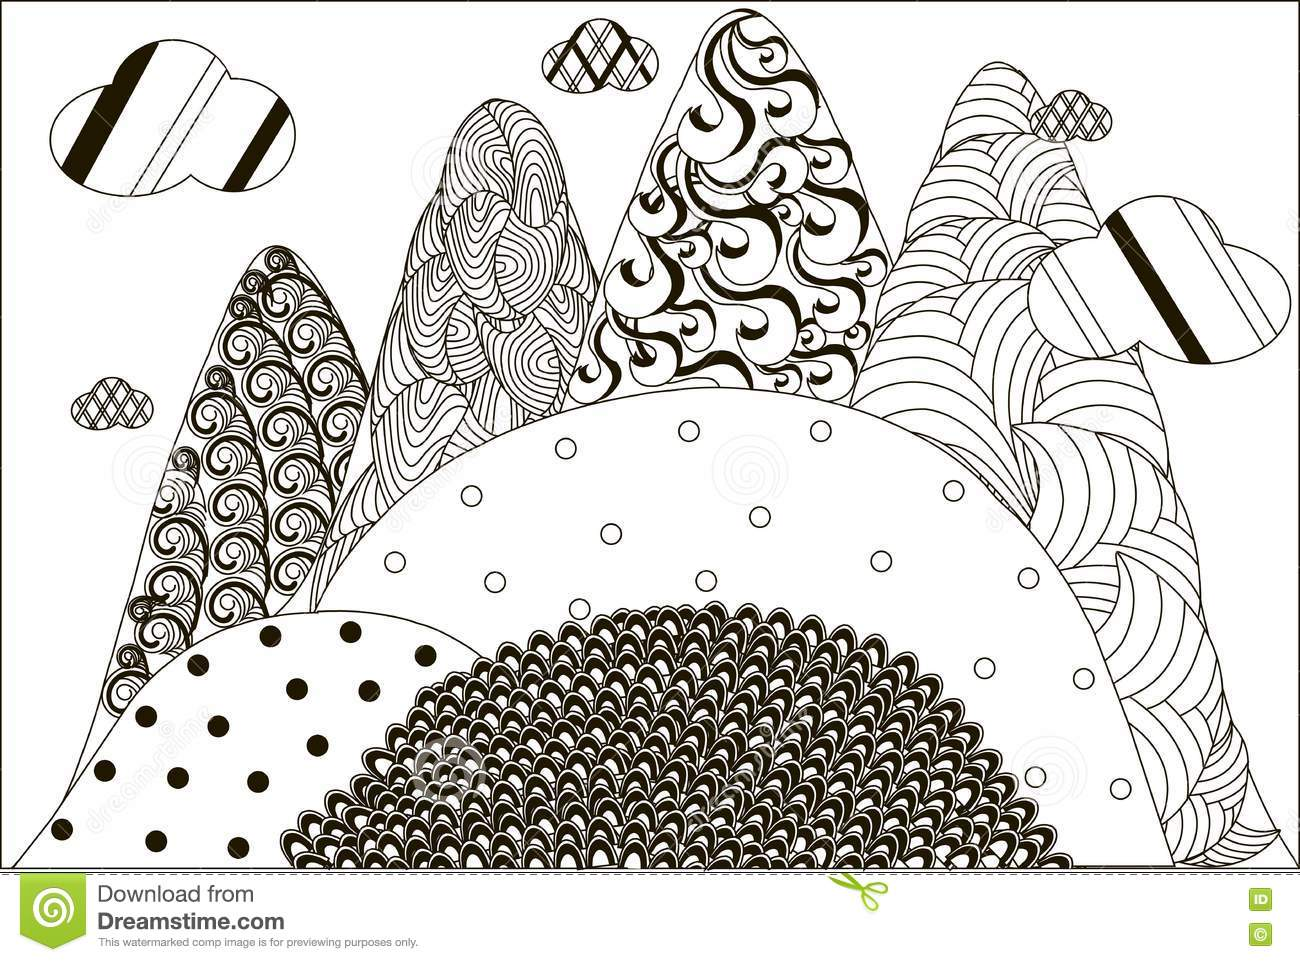 Zentangle Hand Drawn Black And White Mountain Landscape Anti Stress Stock Vector  Image 80808925